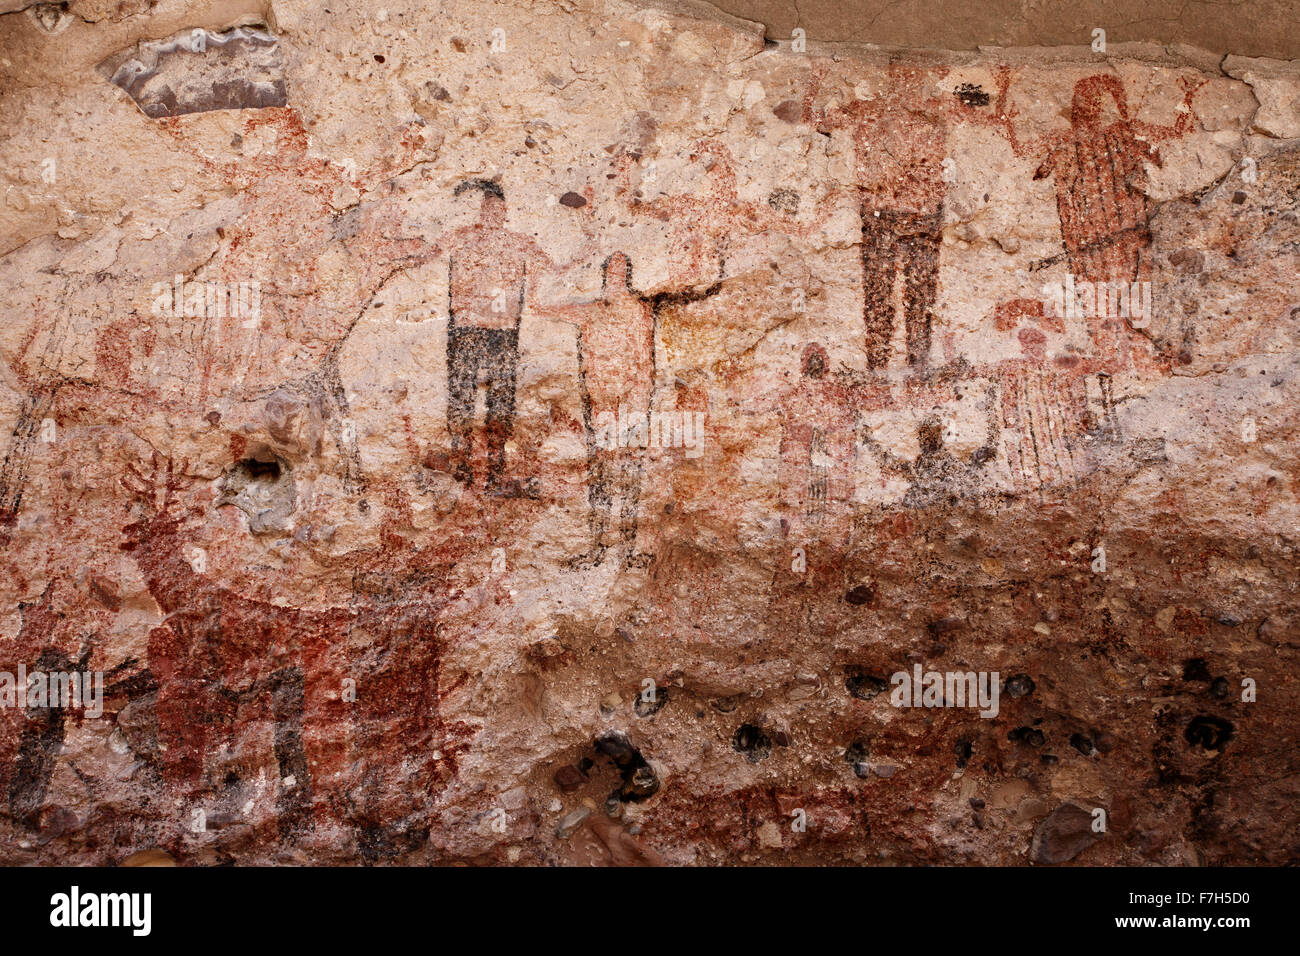 pr7172-D. petroglyphs and rock paintings of Santa Marta, which depict people, animals (deer, rabbits, fish, more). - Stock Image